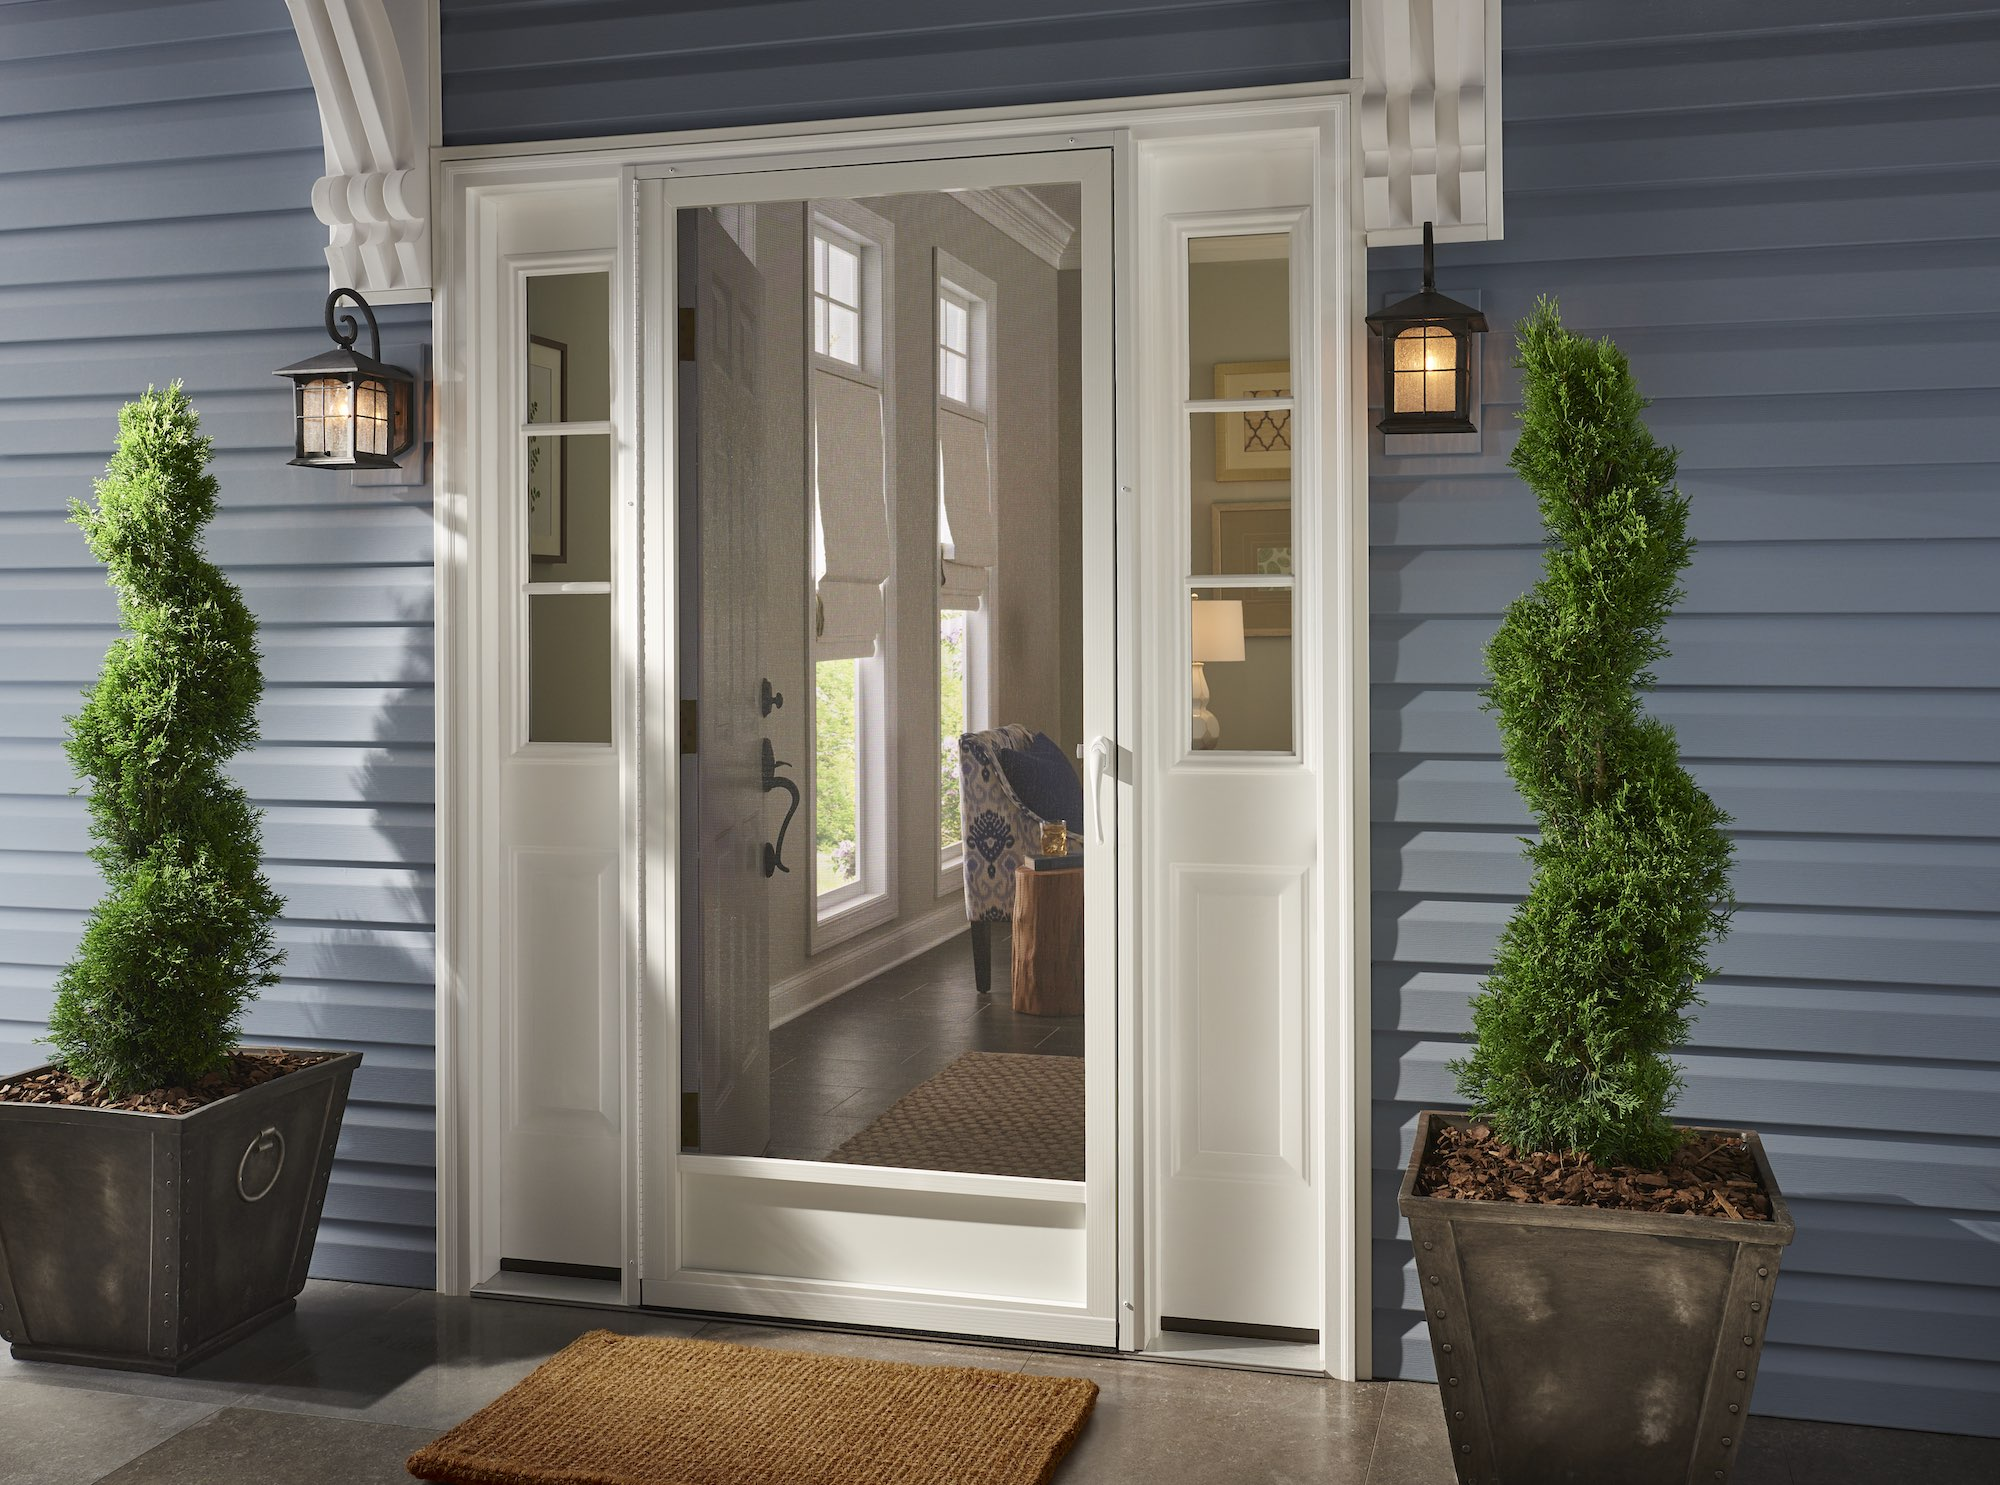 Entry Screen Doors Gallery : screan doors - pezcame.com